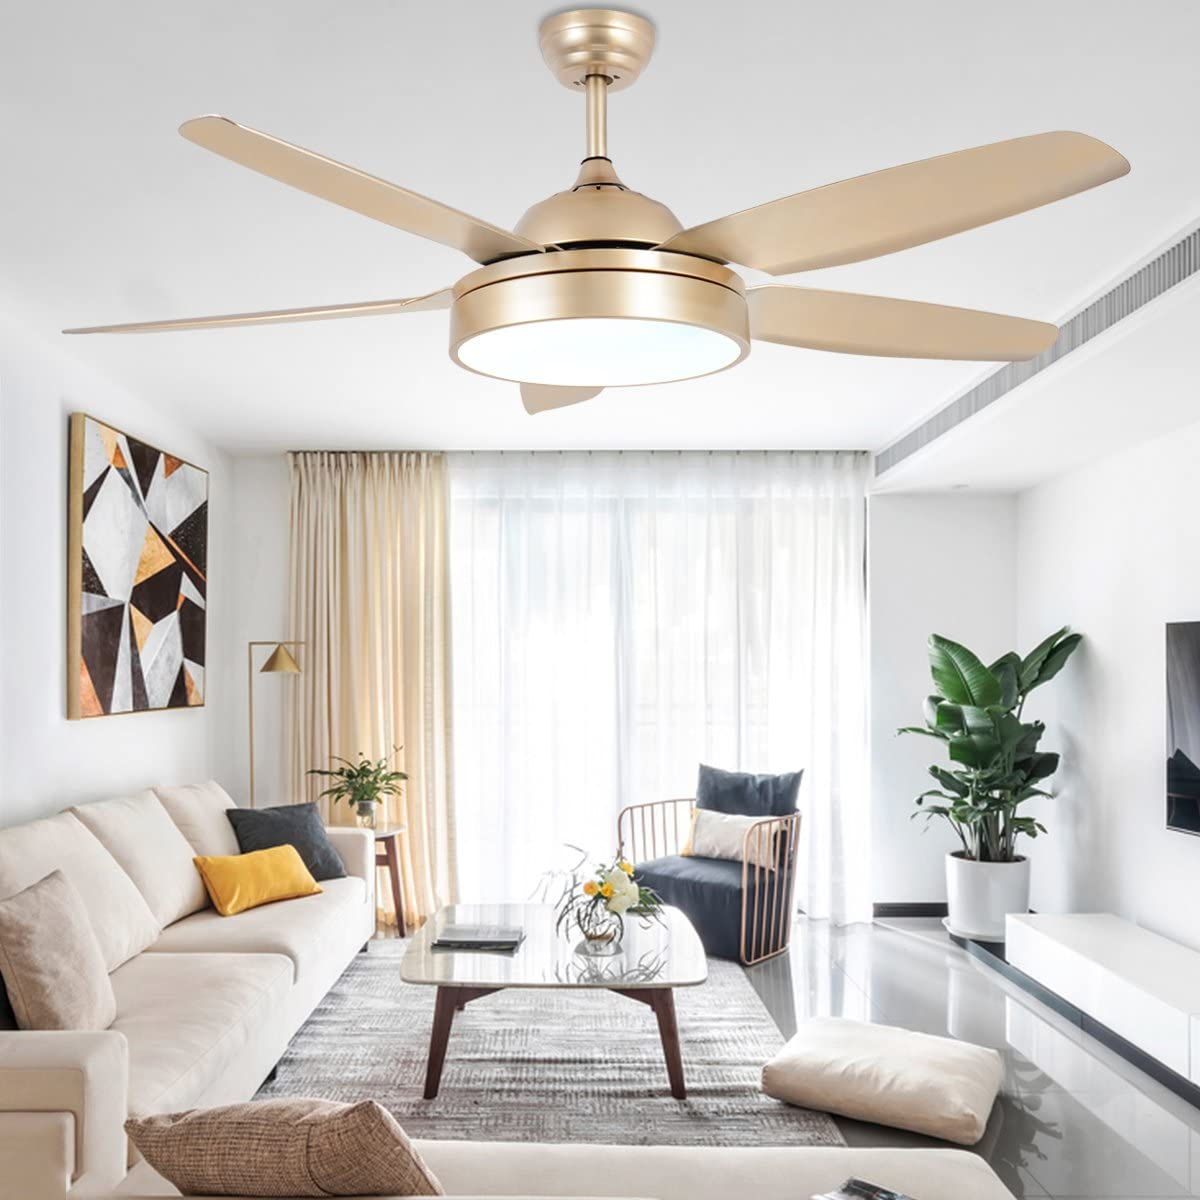 Tropicalfan Ceiling Fan Chandelier with LED Light and 5 Blades Champagne Remote Control for Home Decoration Living Room Bedroom 48 Inch